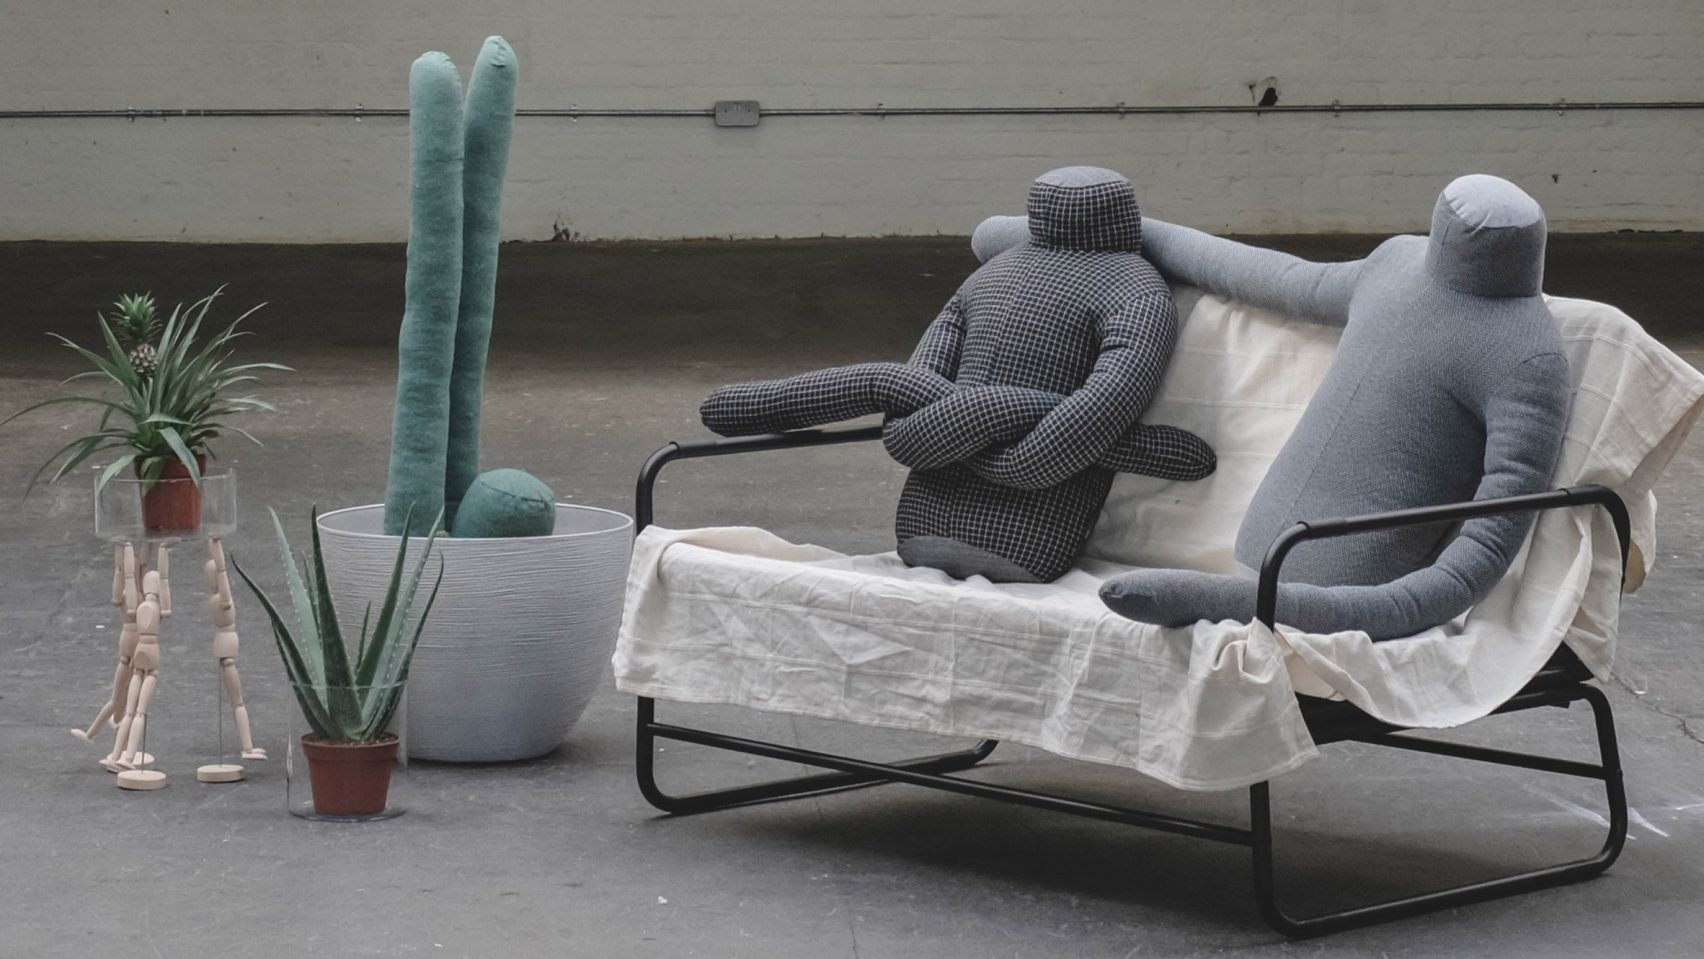 Headless human-shaped pillow by Aseptic Studio